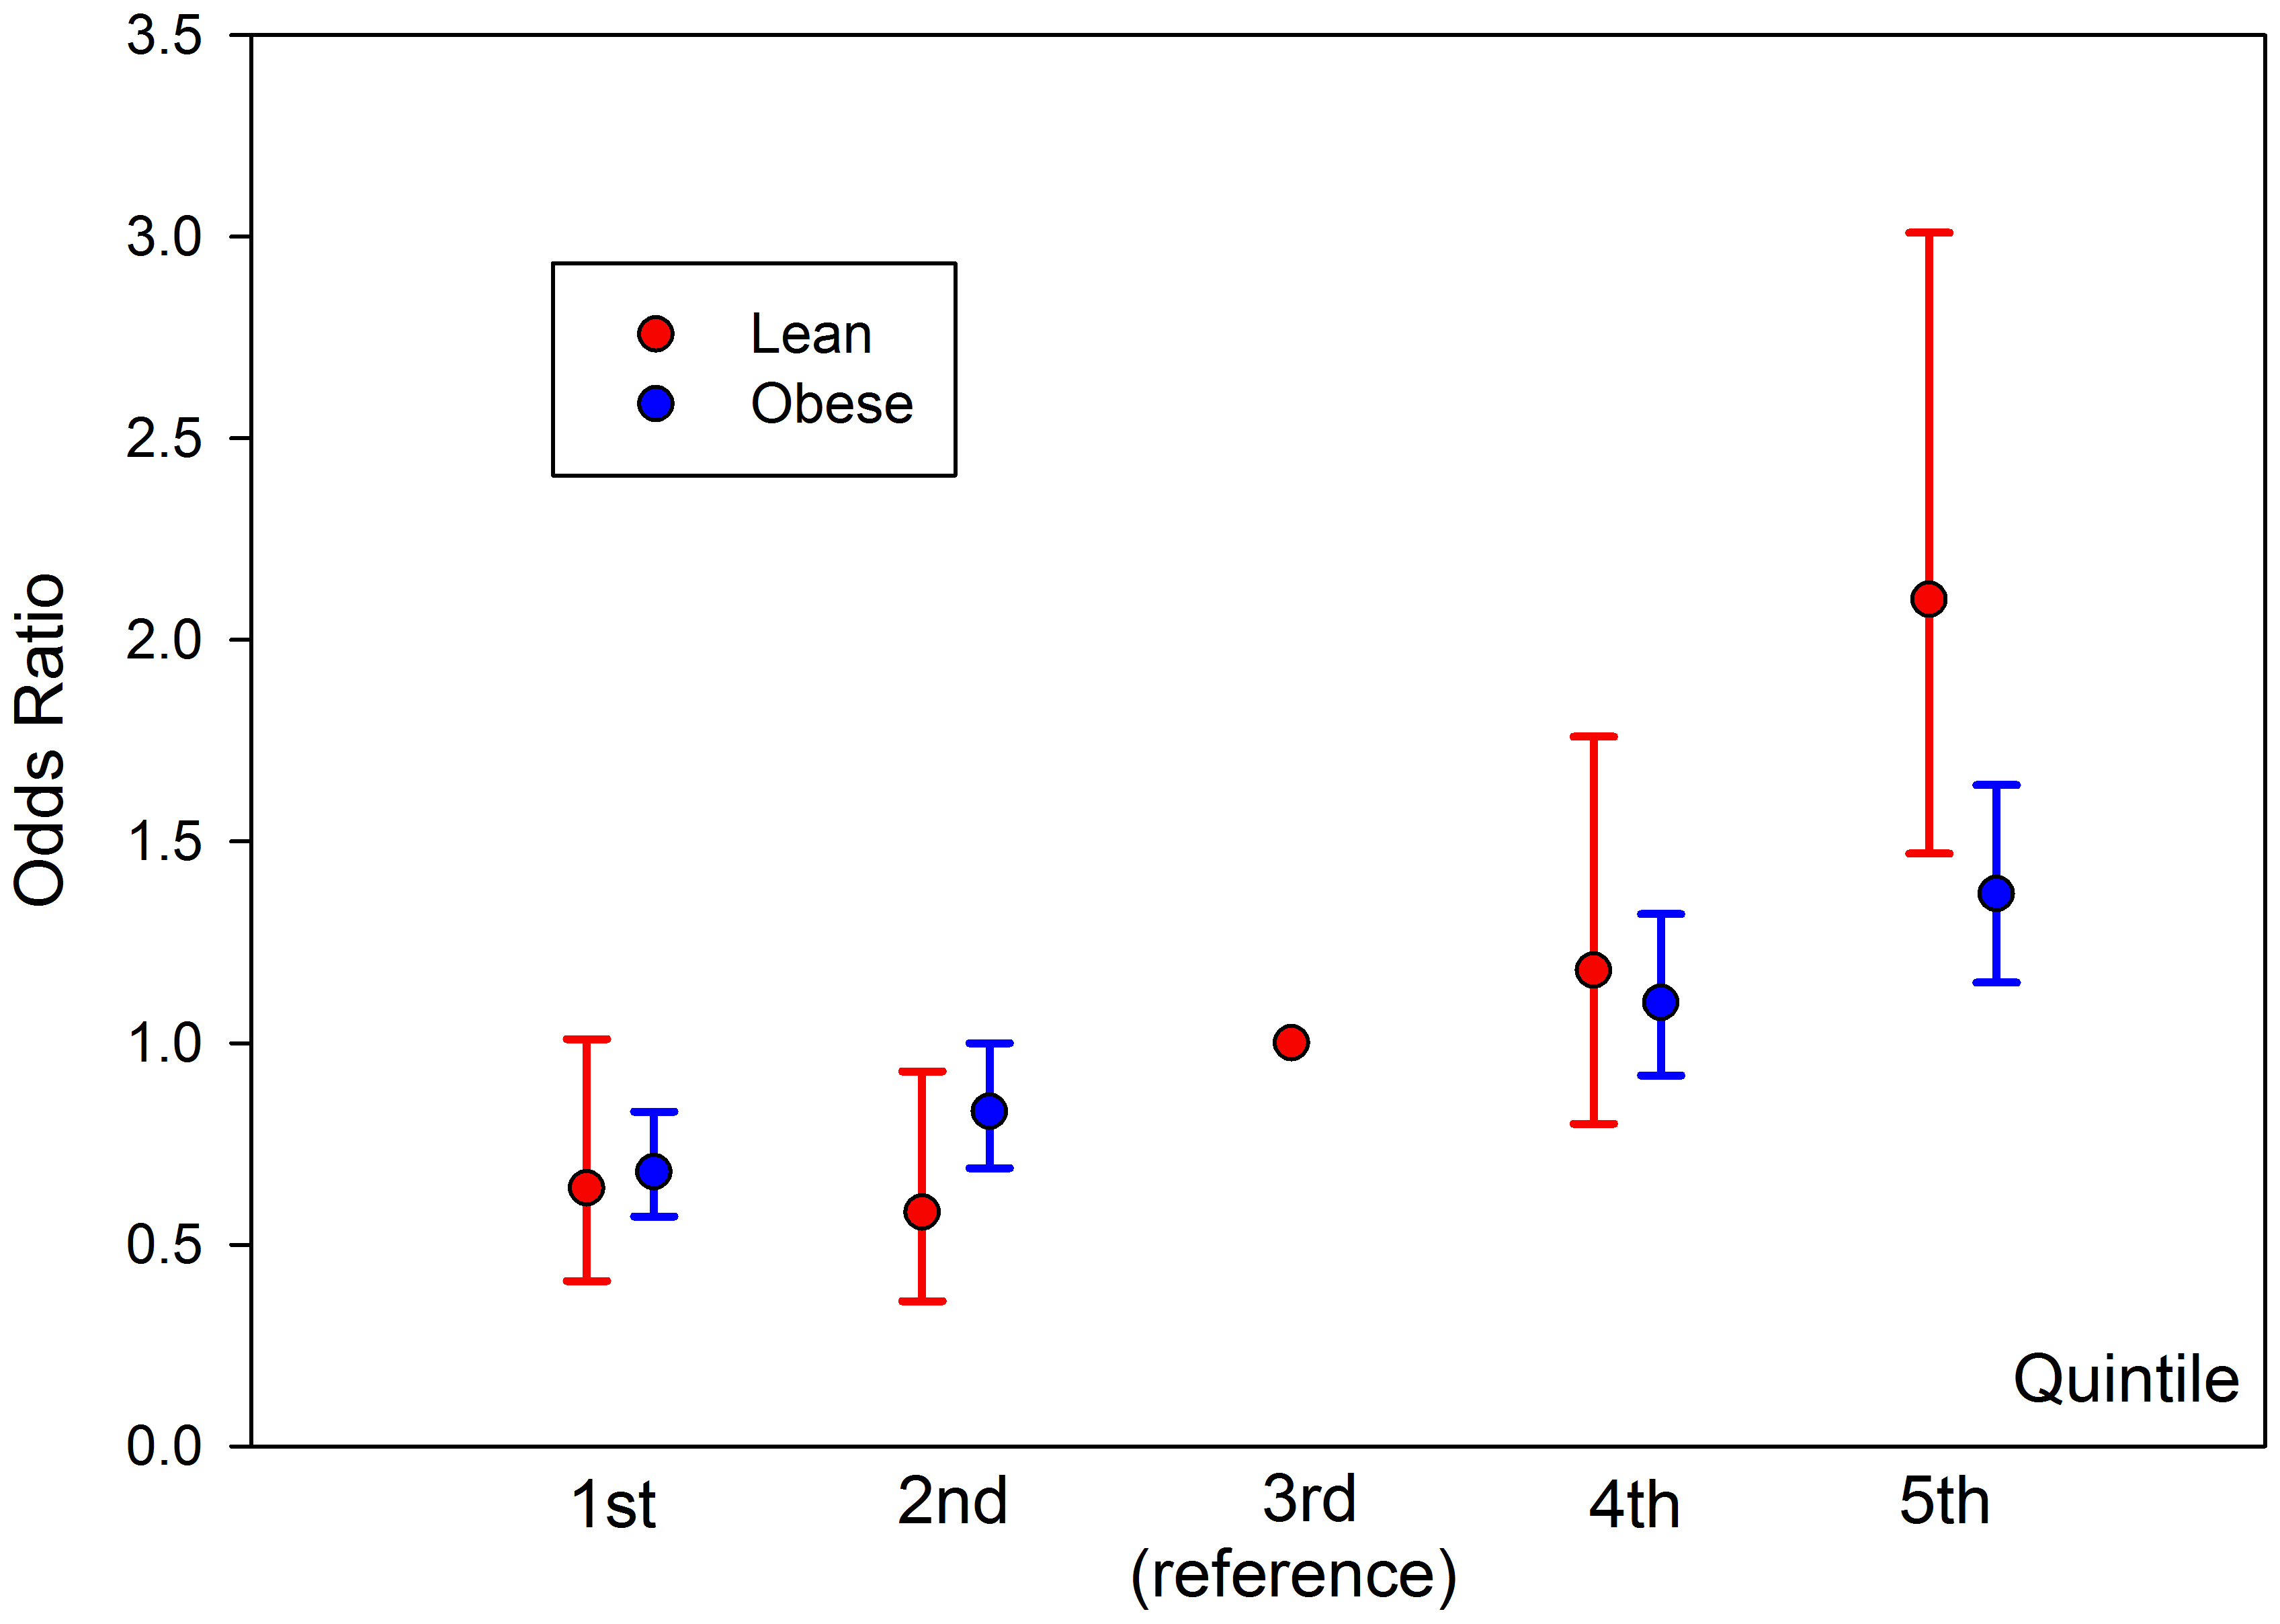 Relative risk for type 2 diabetes depending on risk allele quintile, split by lean and obese BMI.